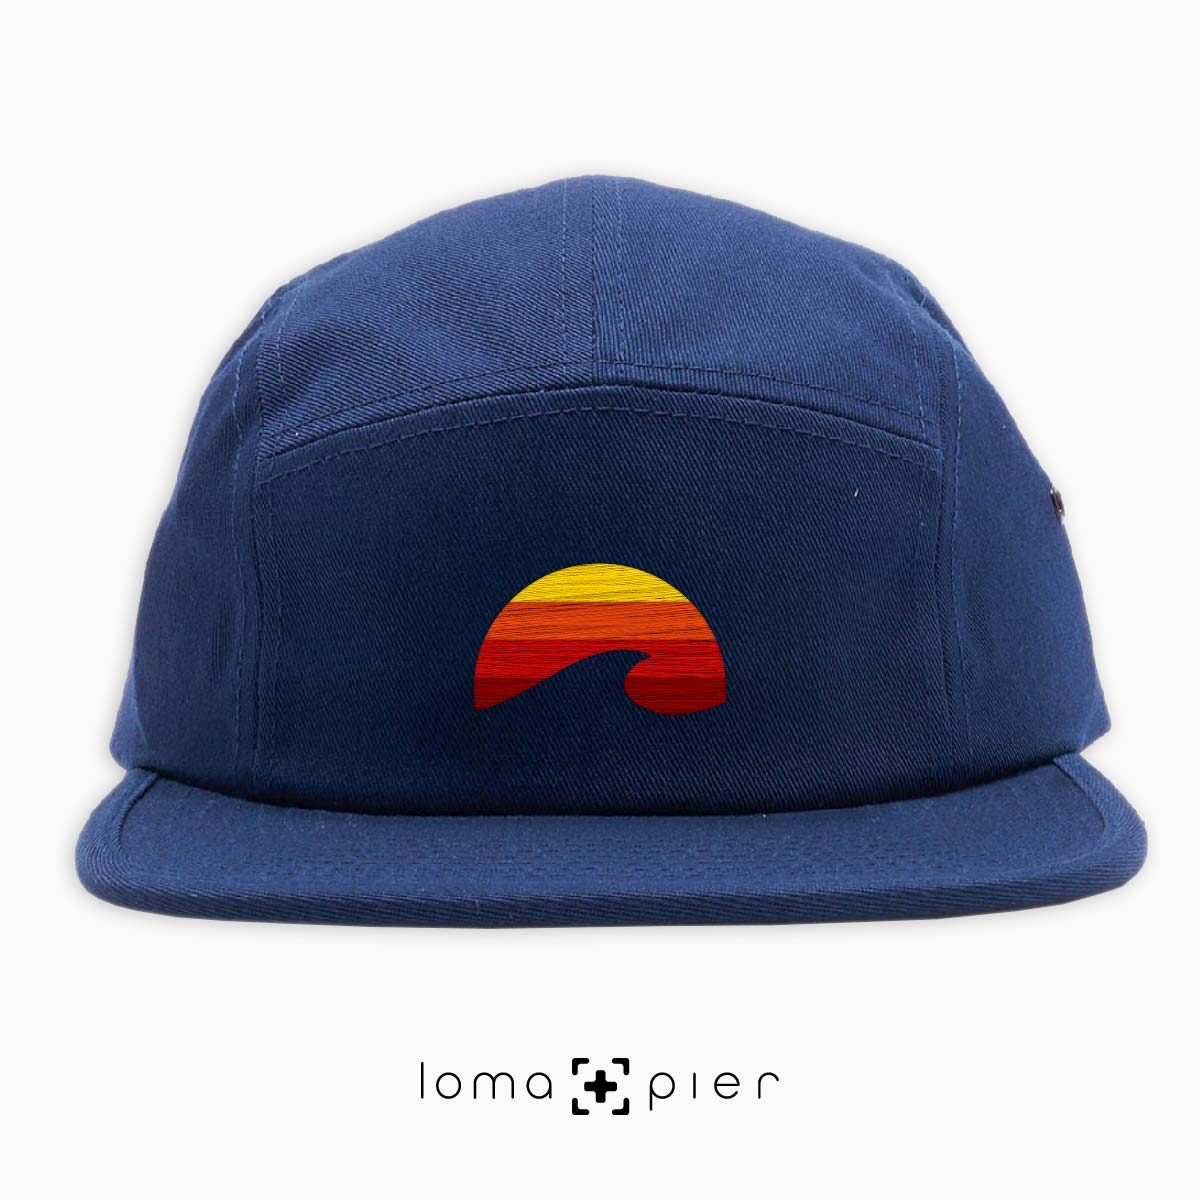 PACIFIC SUN icon embroidered on a navy cotton 5-panel hat by loma+pier hat store